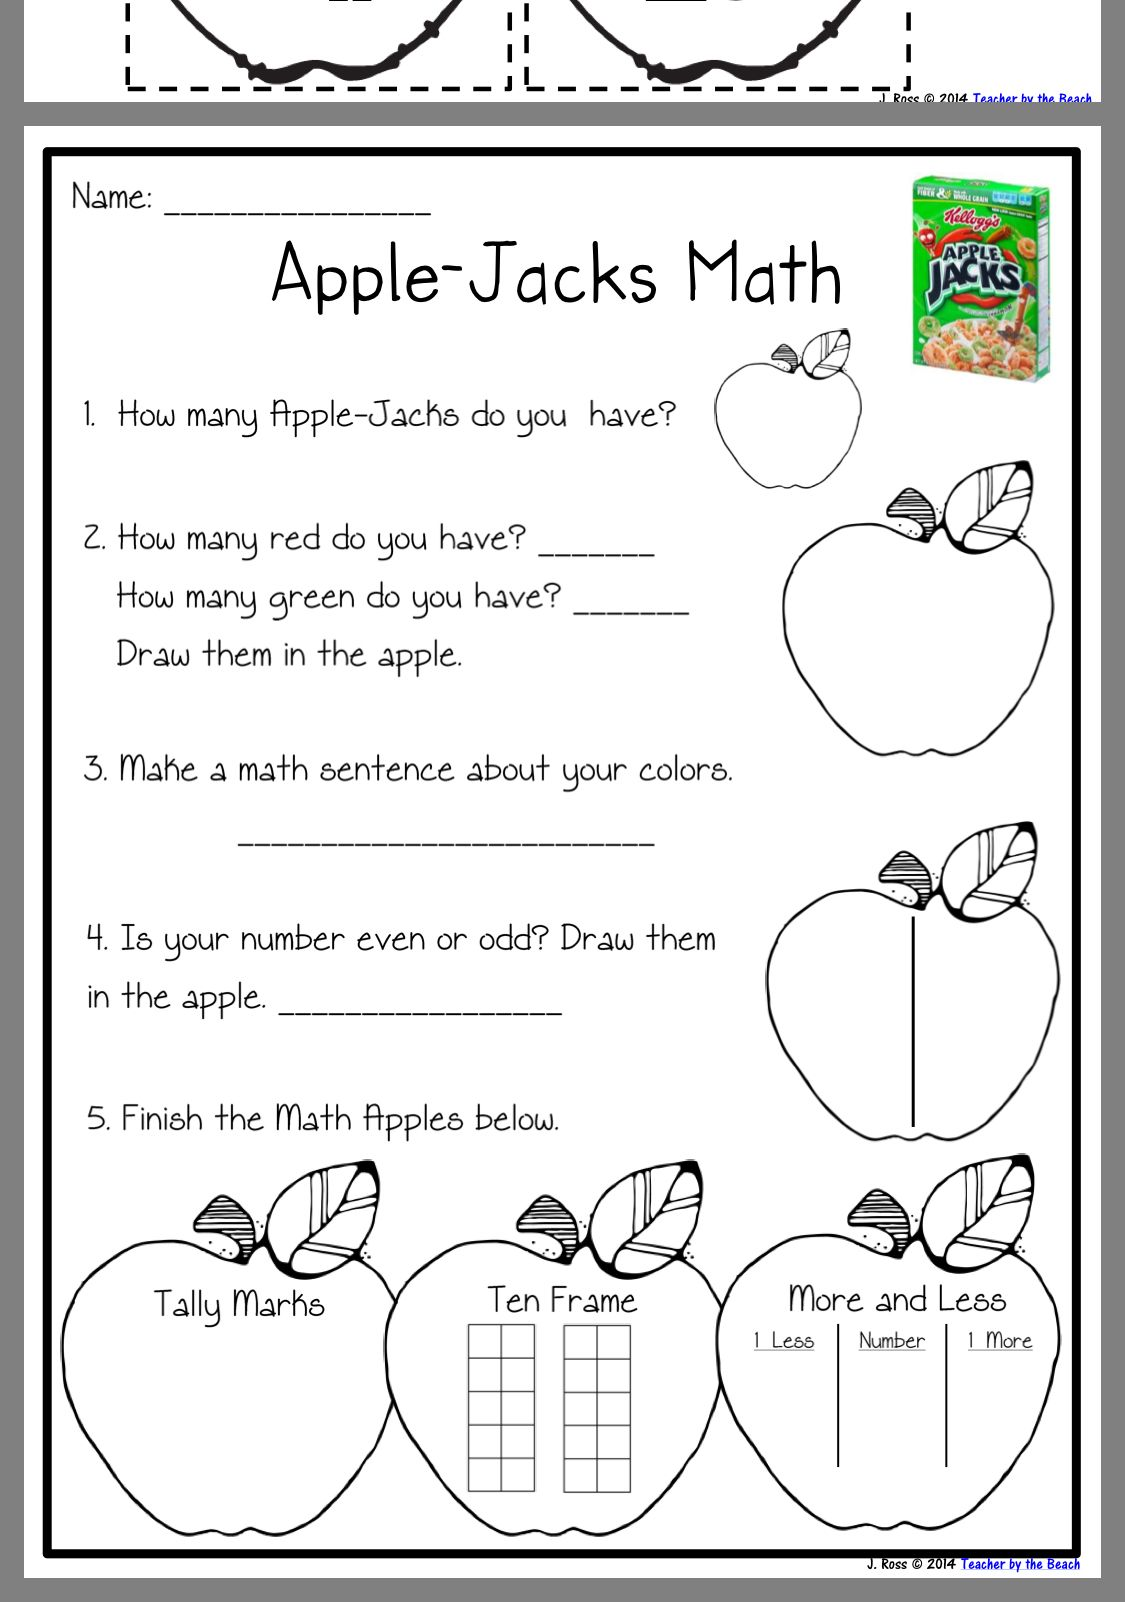 Pin By Mary Cartwright On Smith Elementary